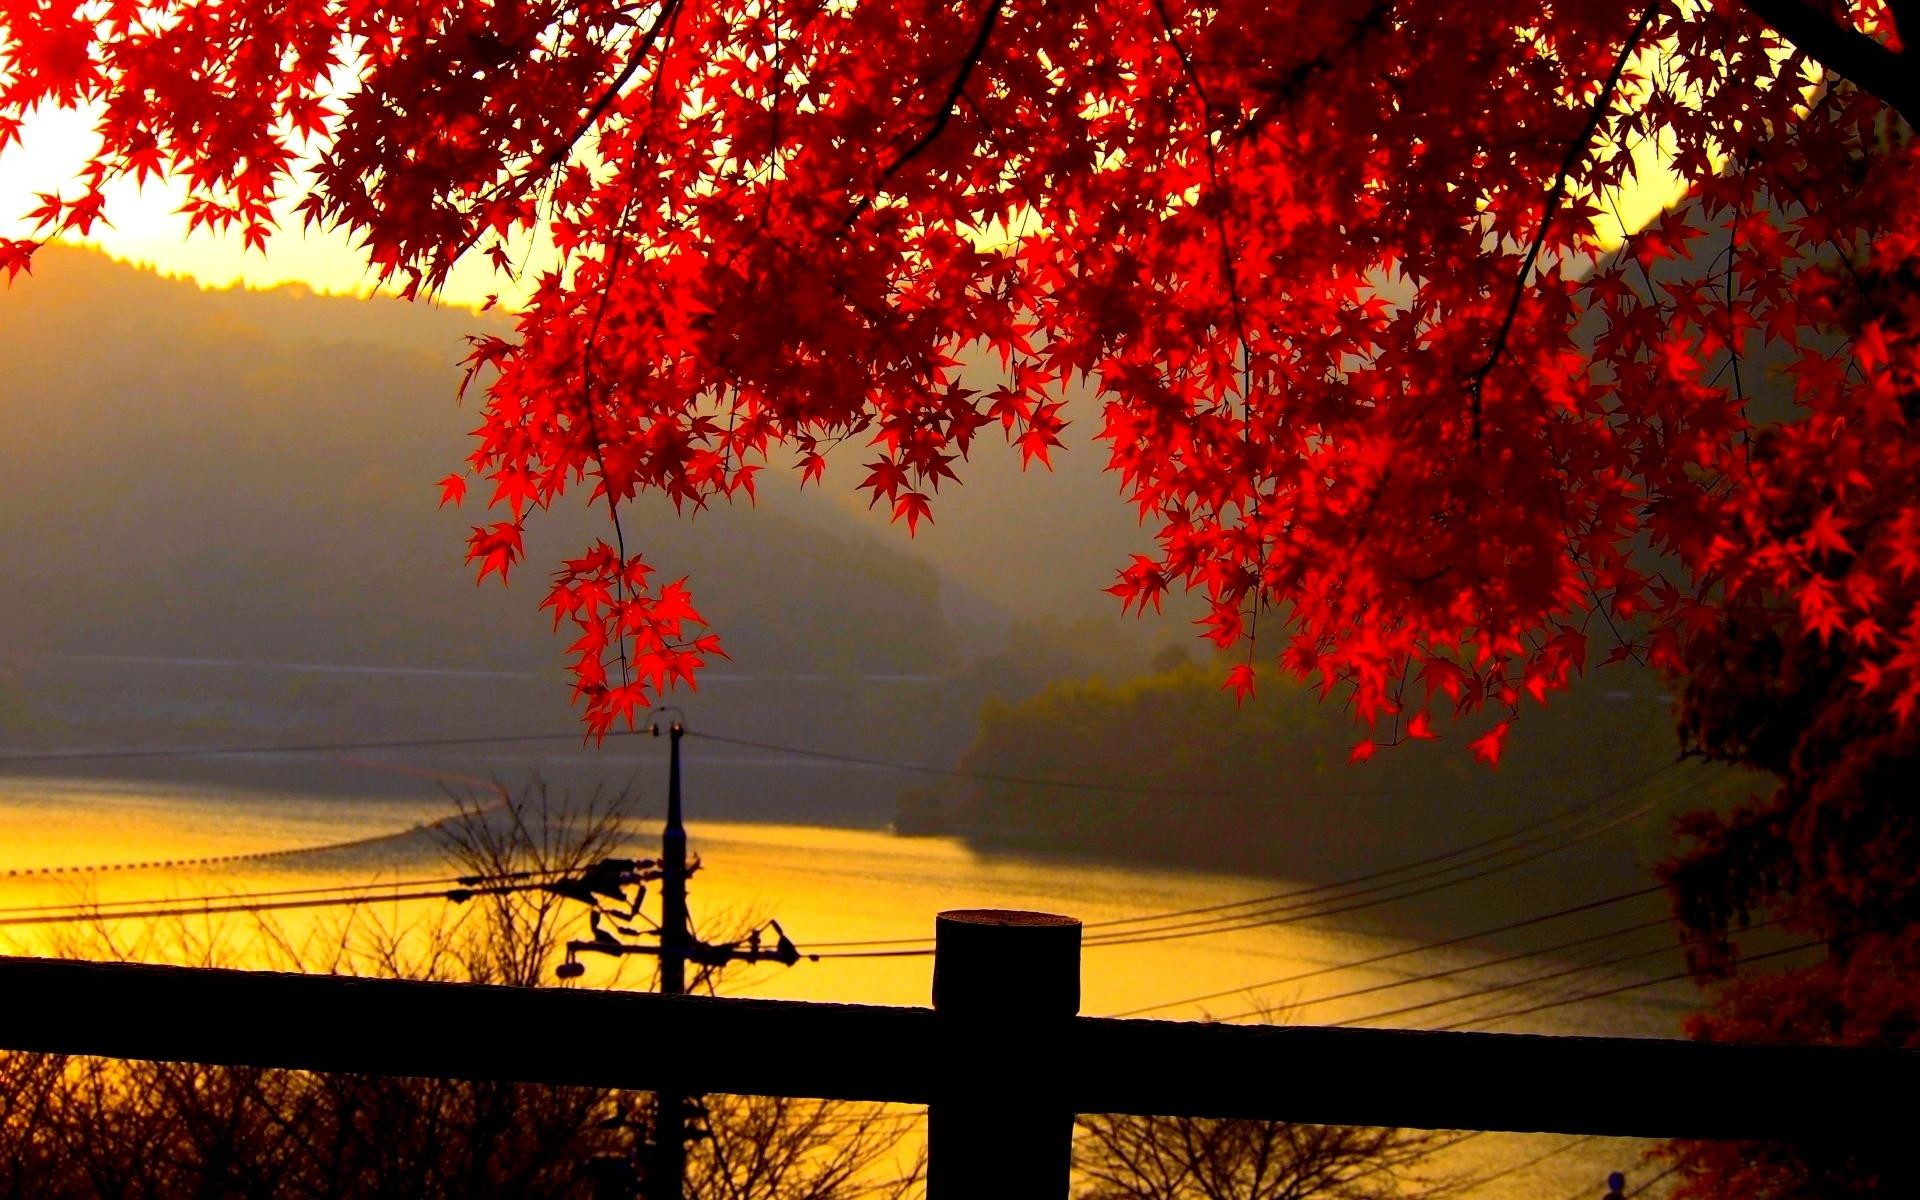 Autumn Leaves Wallpaper – Wallpapers